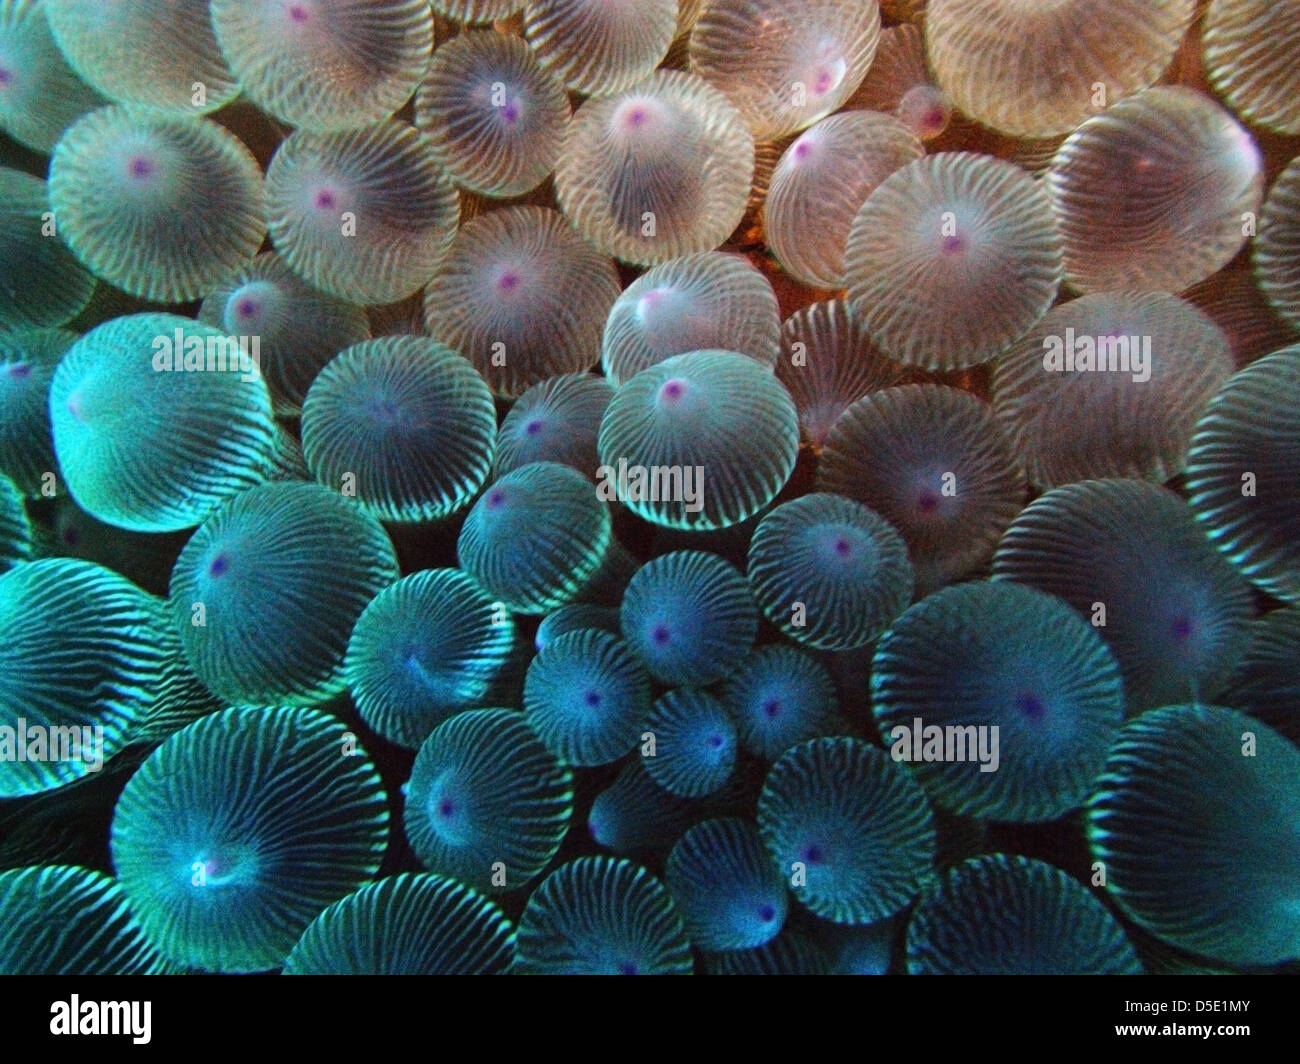 Detail of anemone tentacles, Admiralty Islands, Lord Howe Island Marine Park, Australia Stock Photo